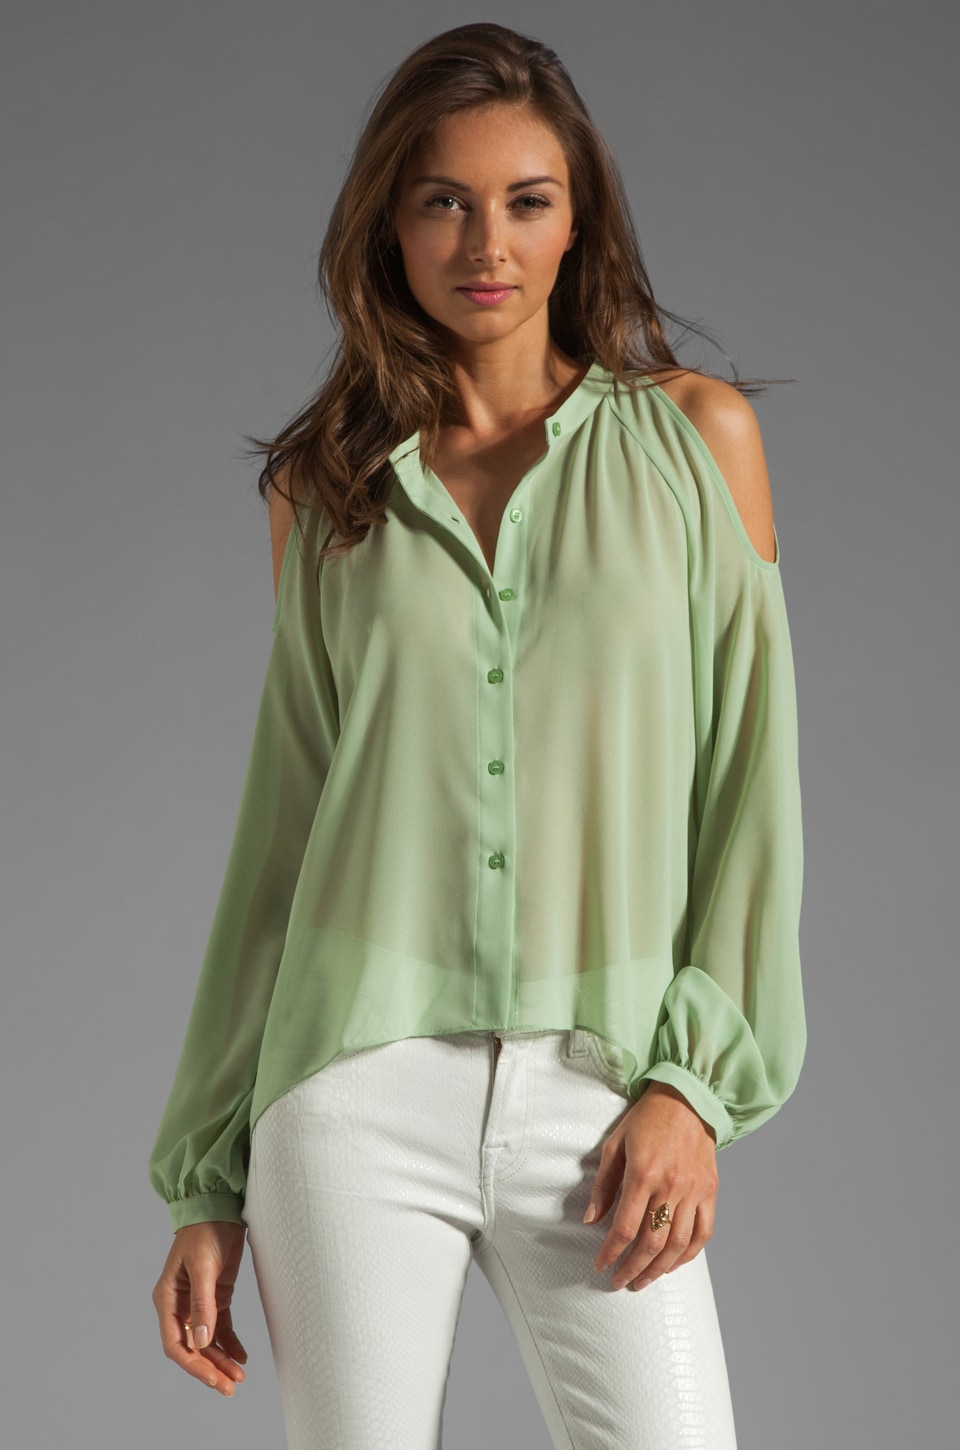 BLAQUE LABEL Open Shoulder Blouse in Mint